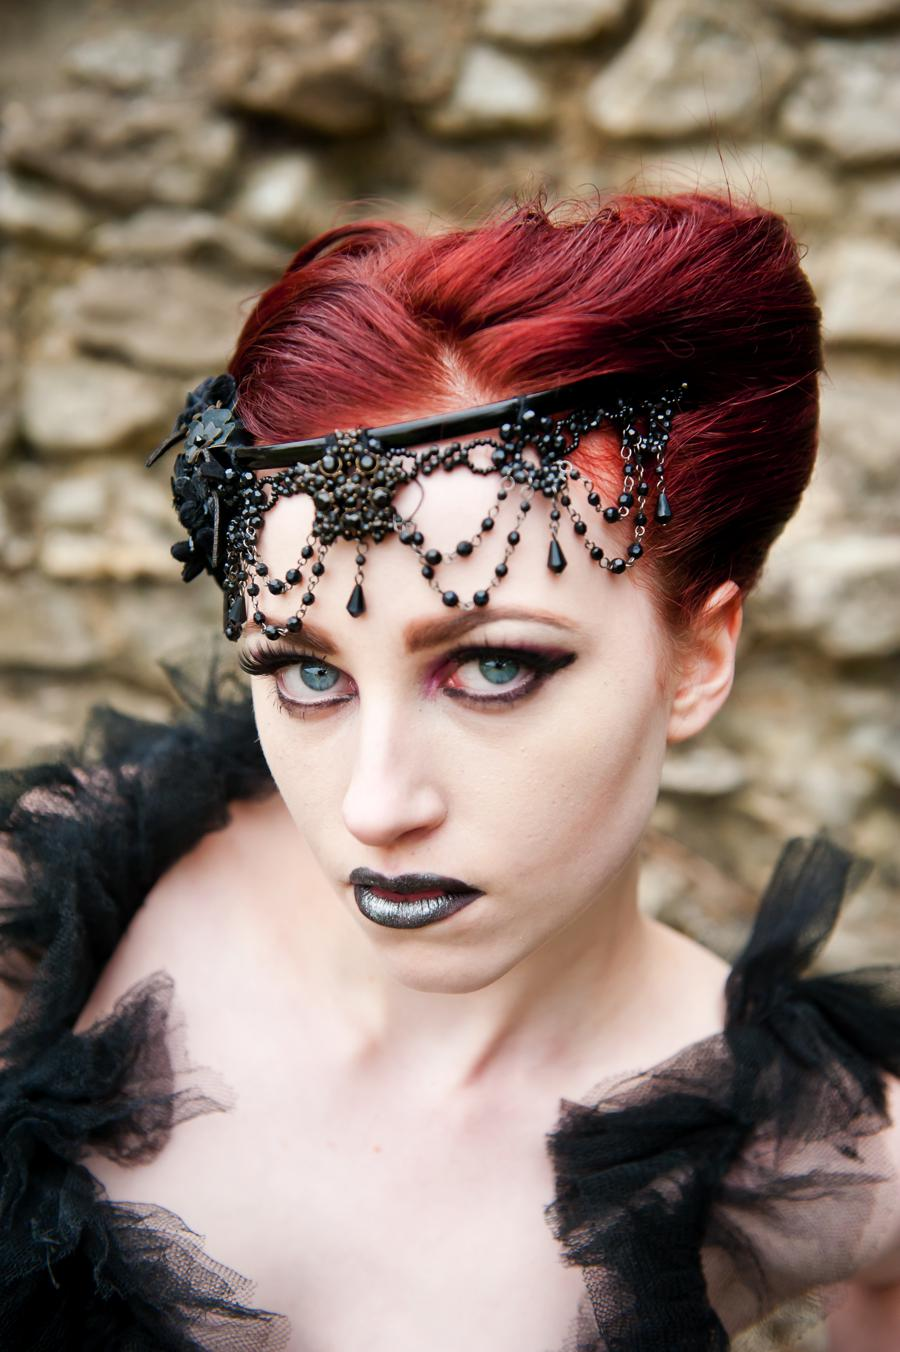 Awesome Wedding Photo Shoot Victorian Gothic Alice In Weddingland Short Hairstyles Gunalazisus